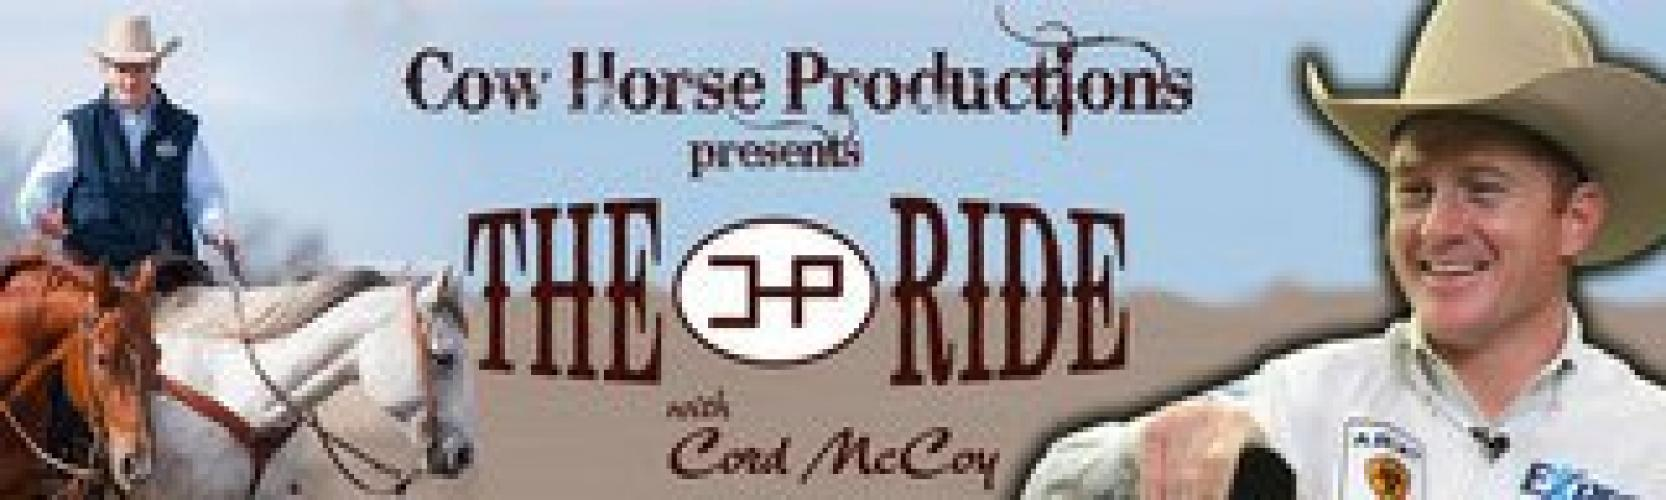 The Ride With Cord McCoy next episode air date poster